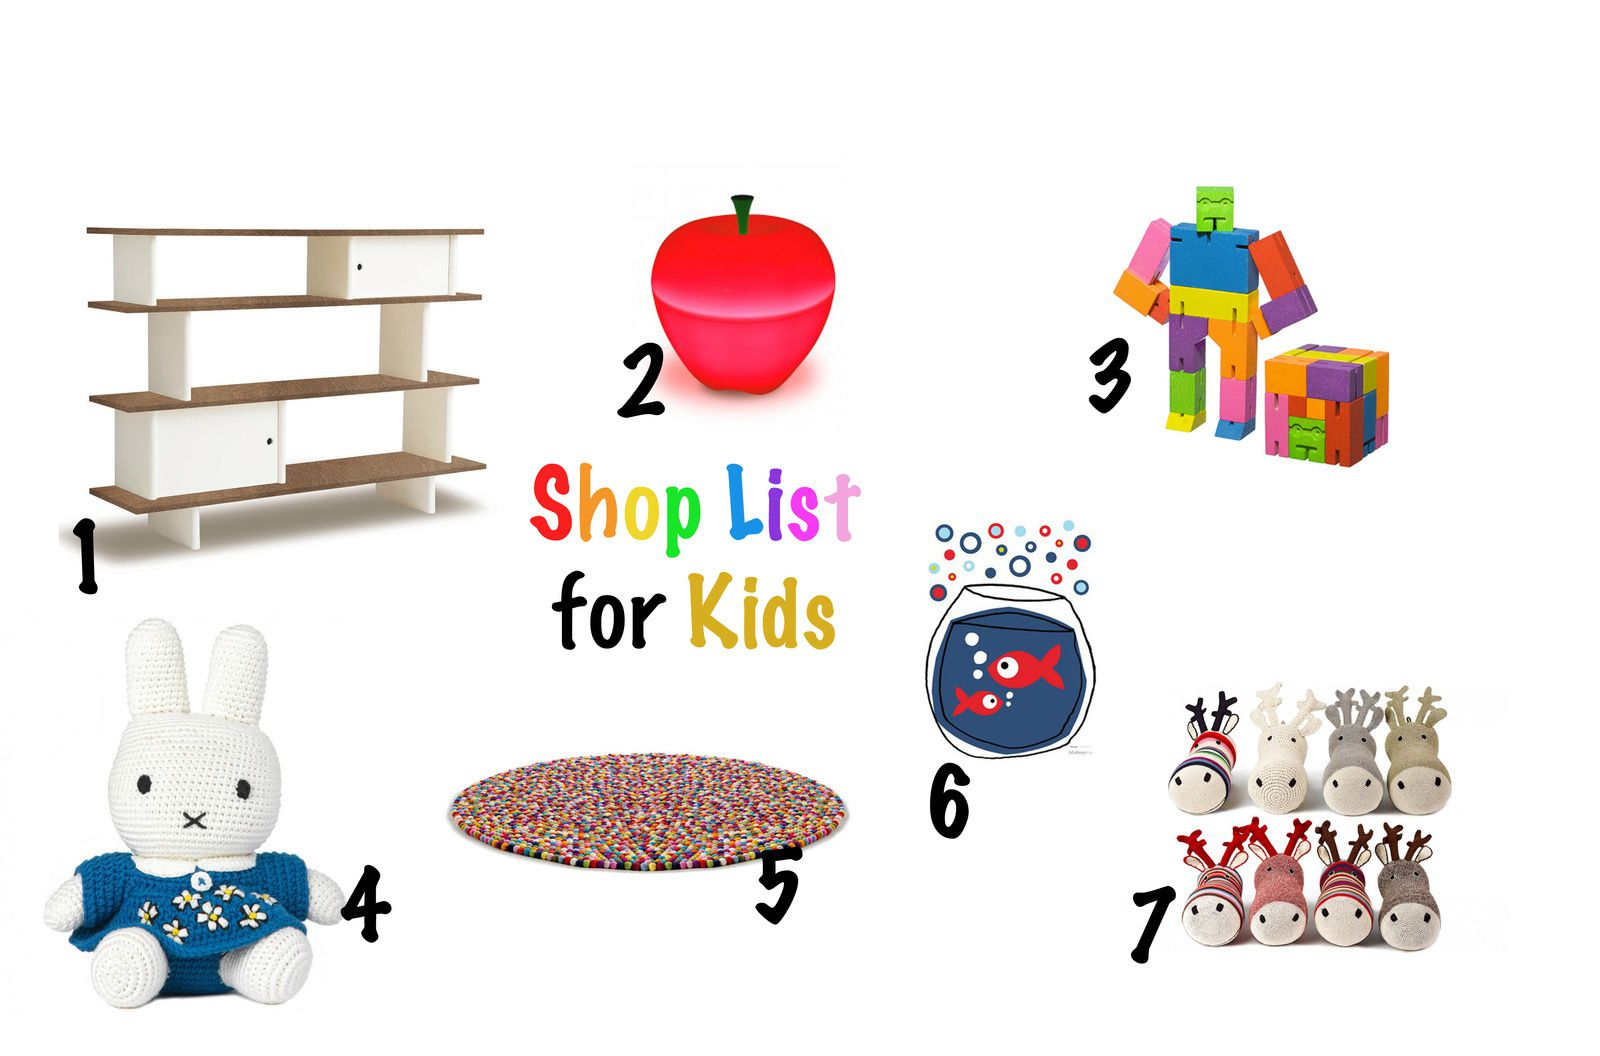 Shop list for Kids...les enfants ont le droit au design...^^